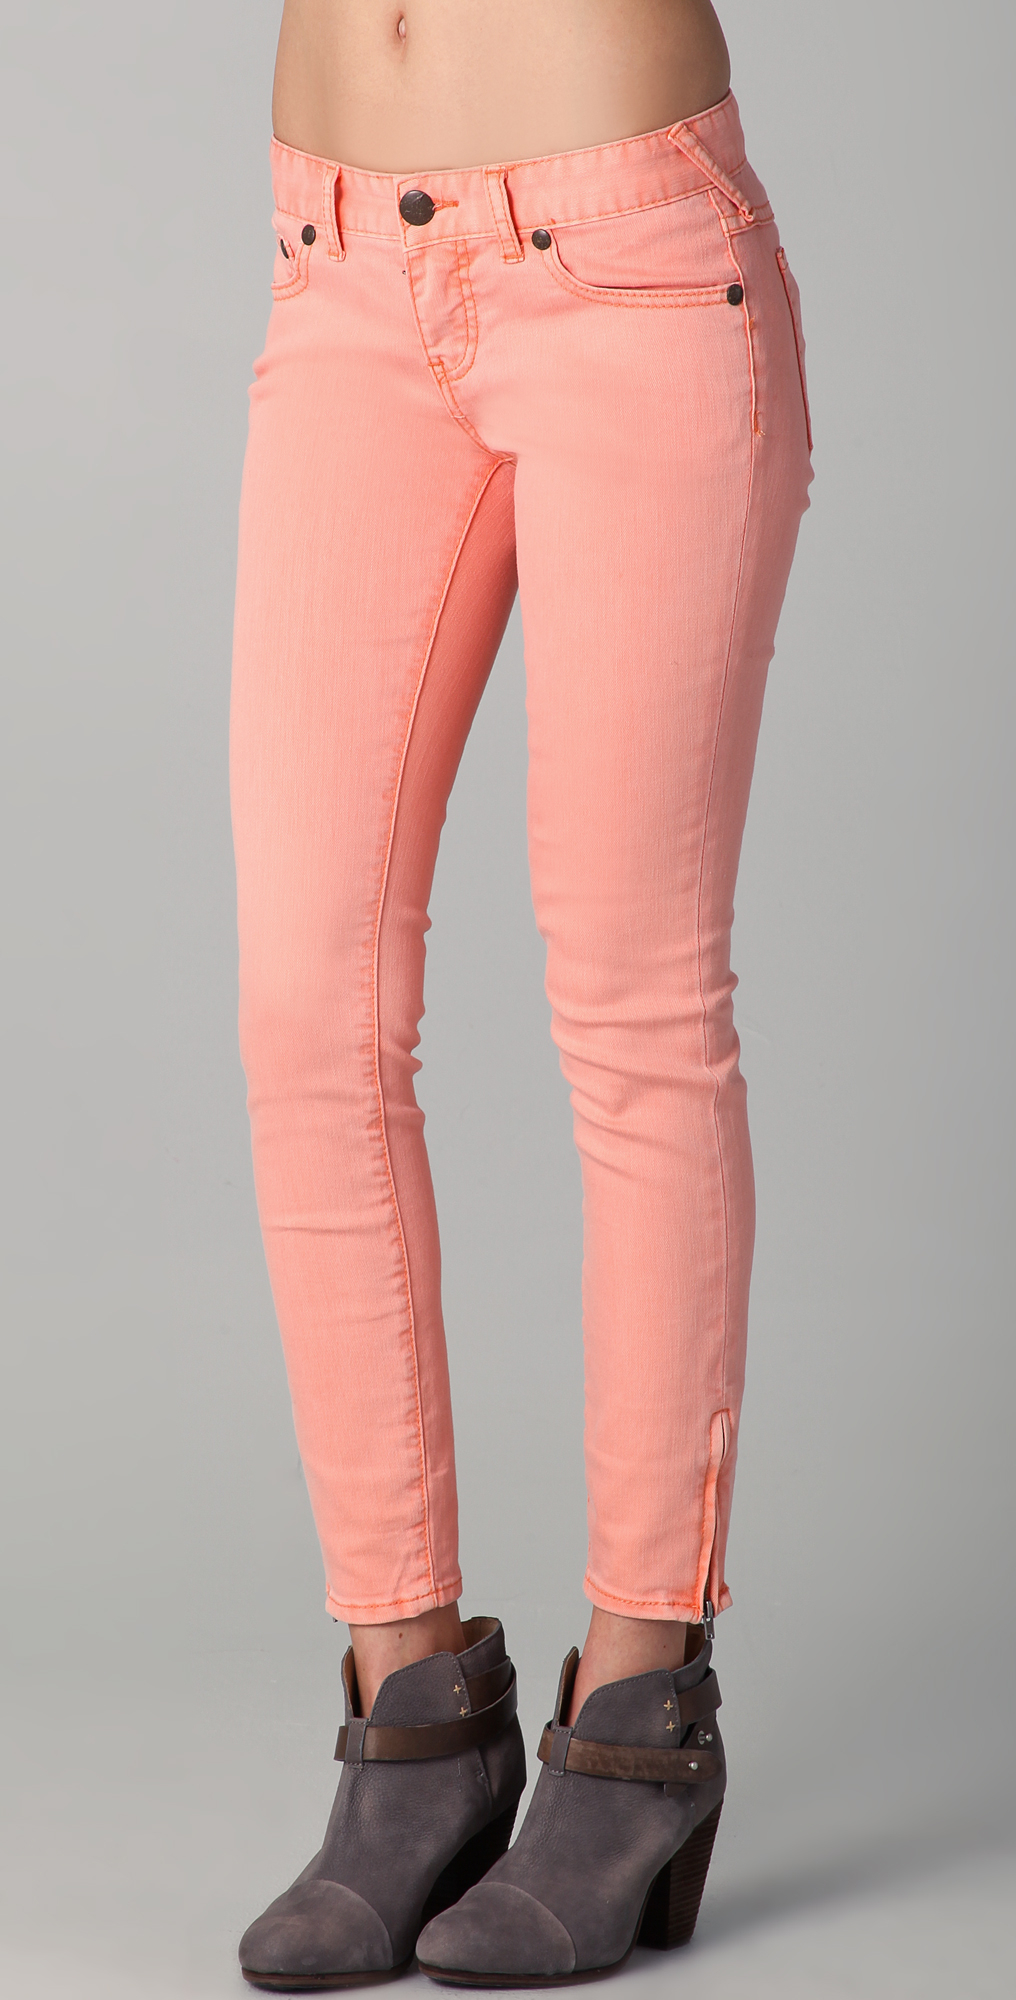 Free people Milenium Cropped Colored Skinny Jeans in Pink | Lyst